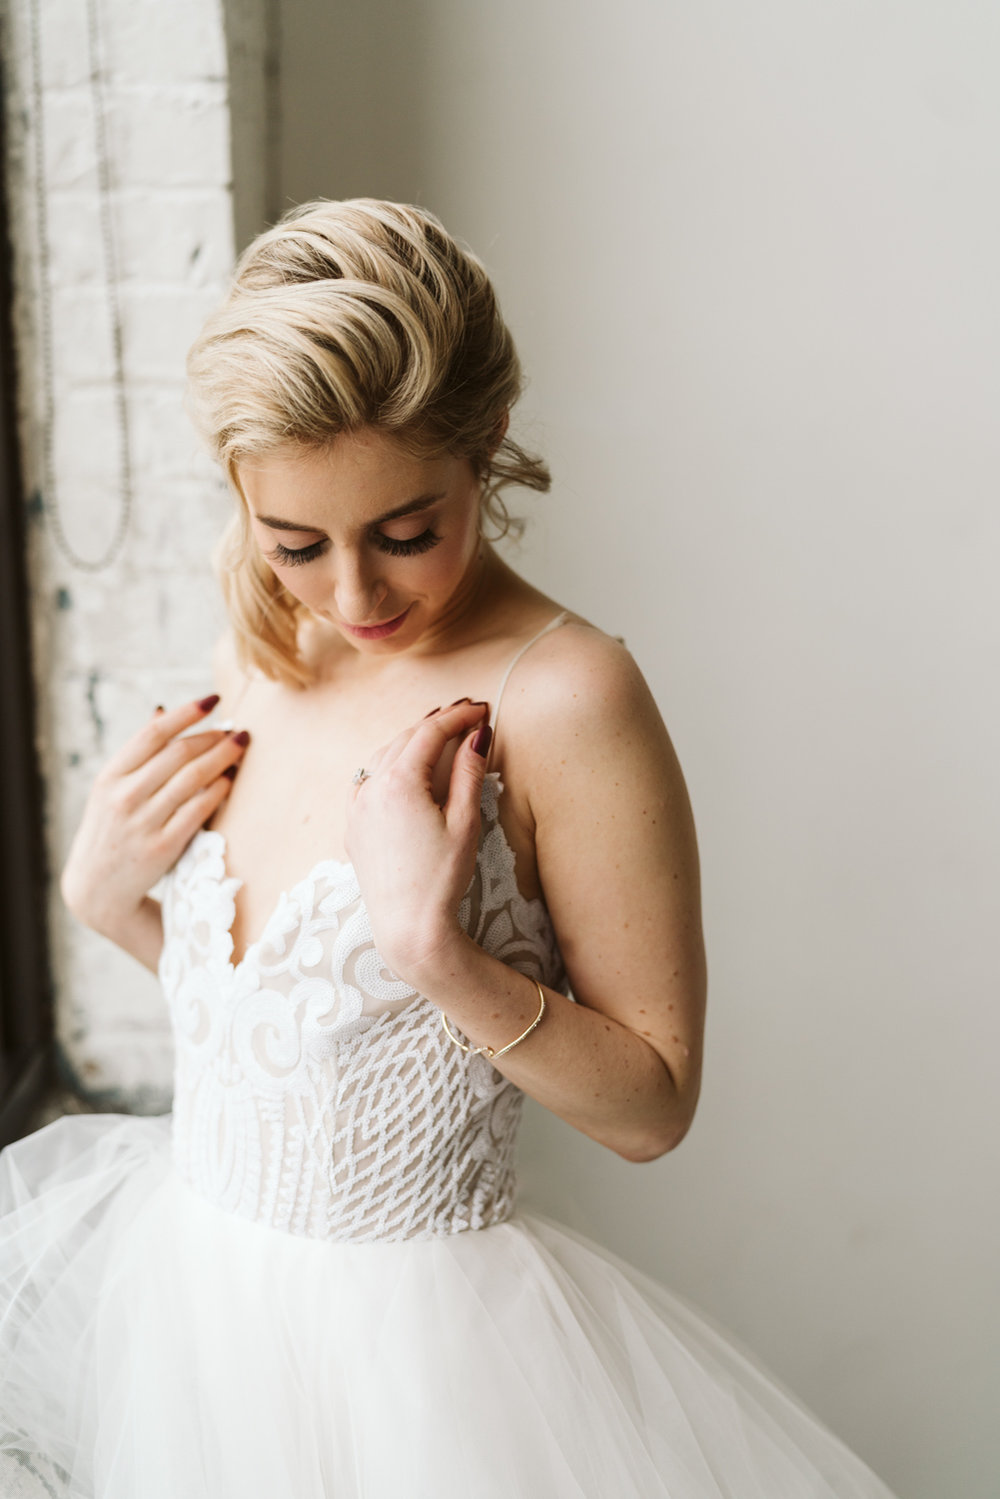 April Yentas Photography - January Styled Shoot-444.jpg